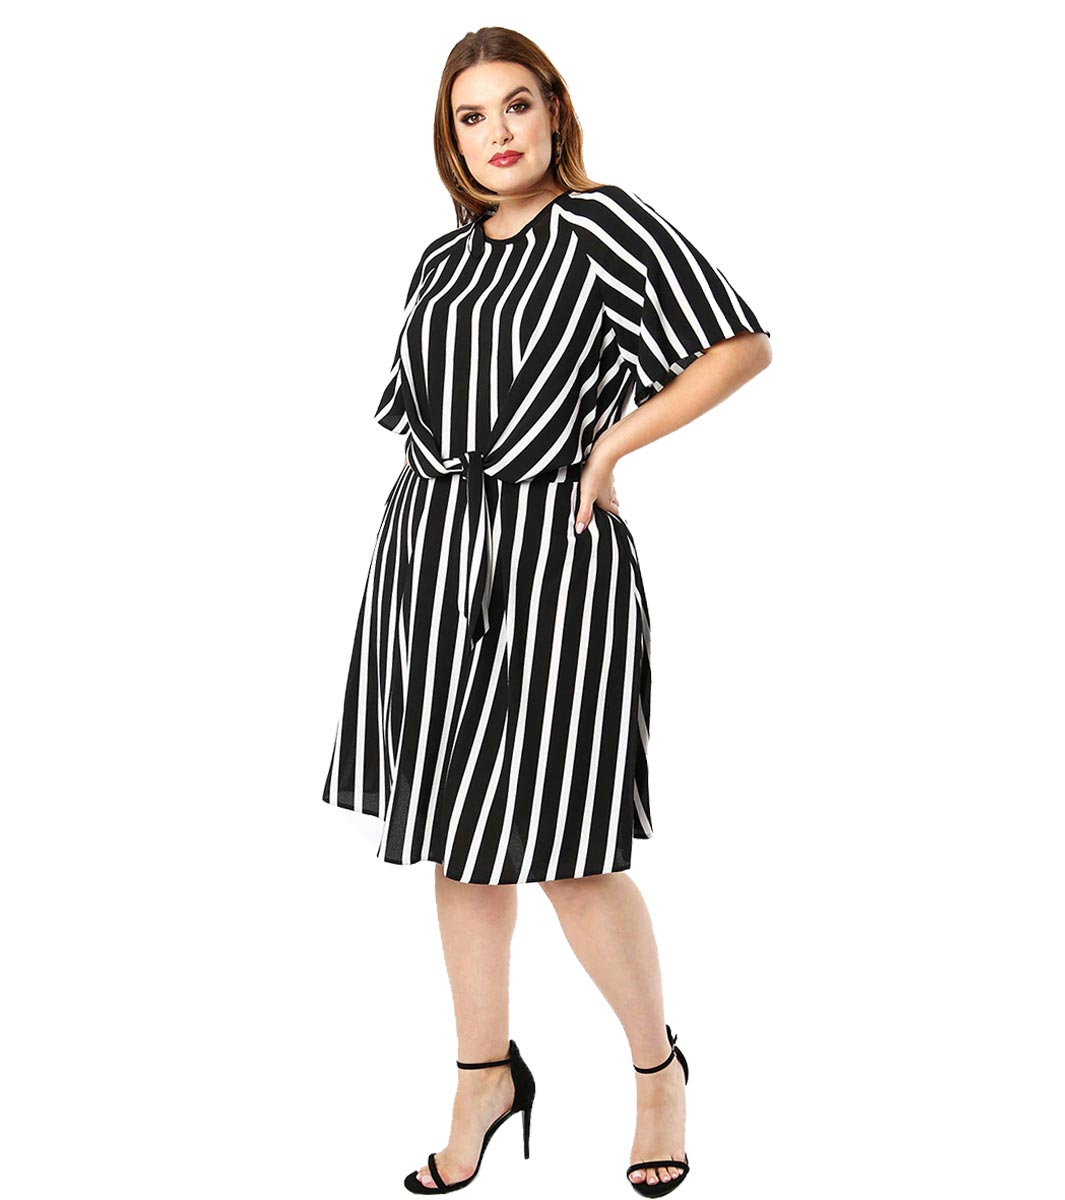 Lovedrobe Plus Size Clothing